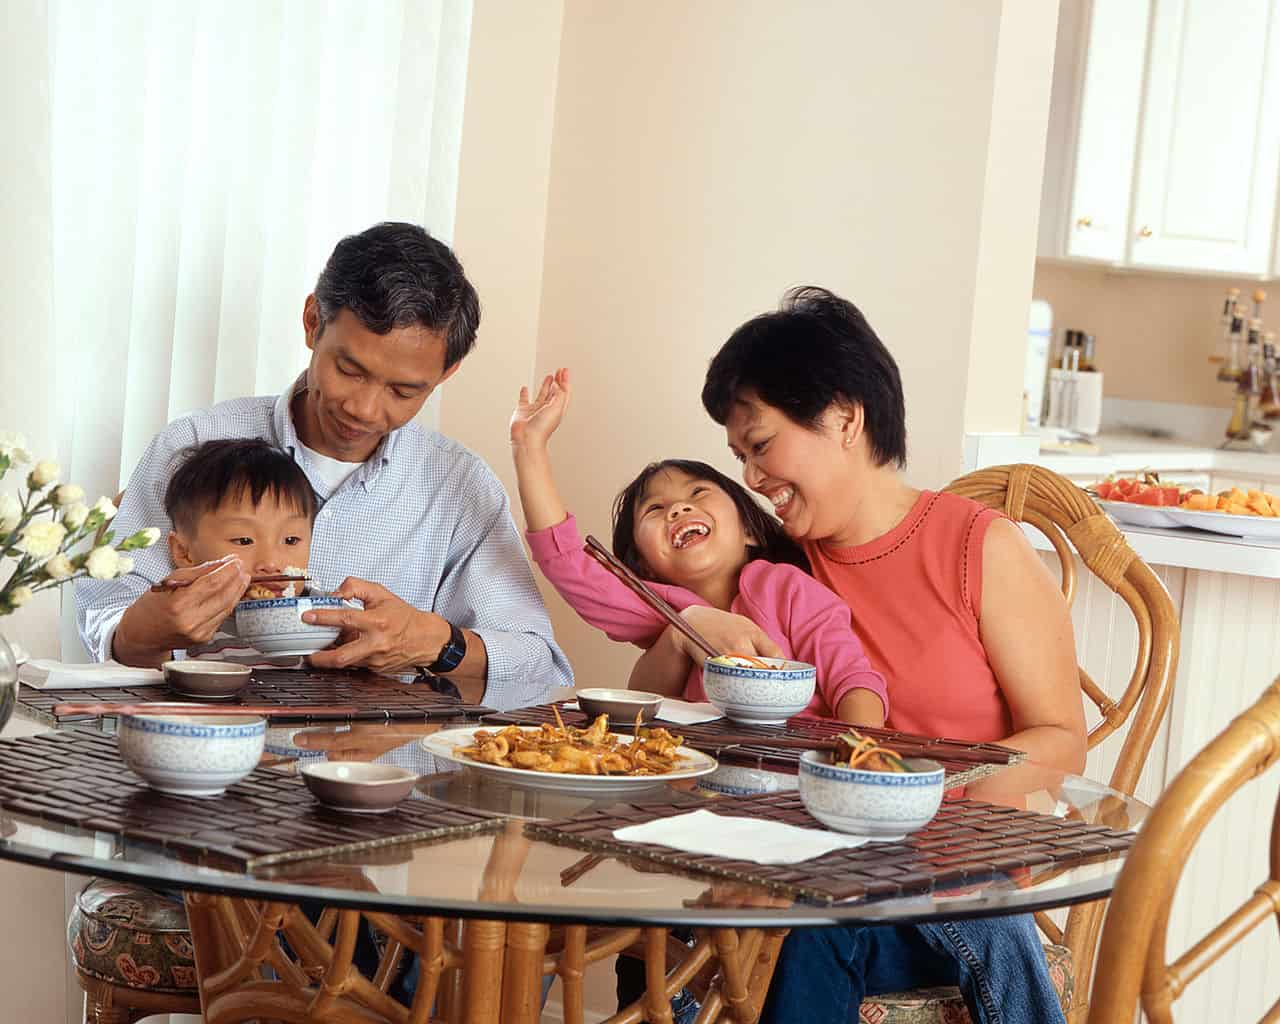 Family Eating a Meal - How to Beat the Jetlag